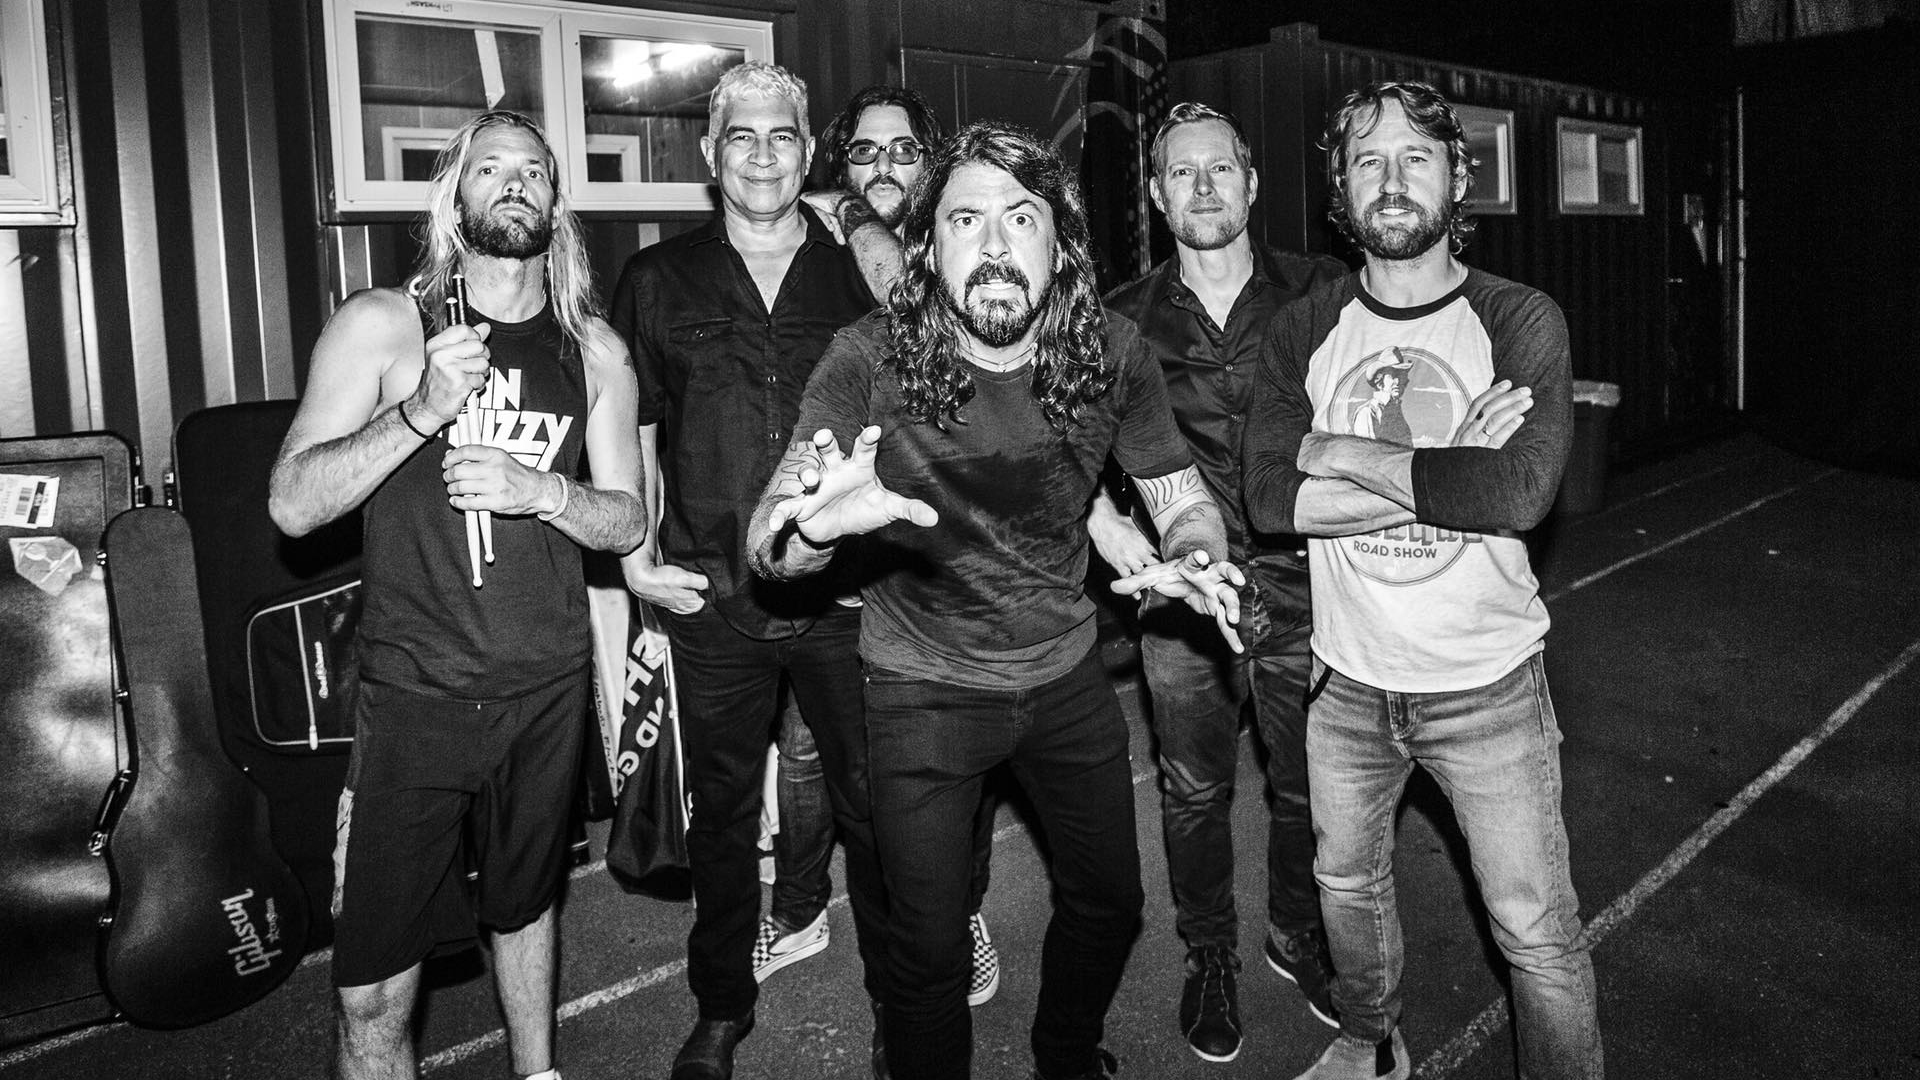 Foo Fighters Approached About Playing The Super Bowl?